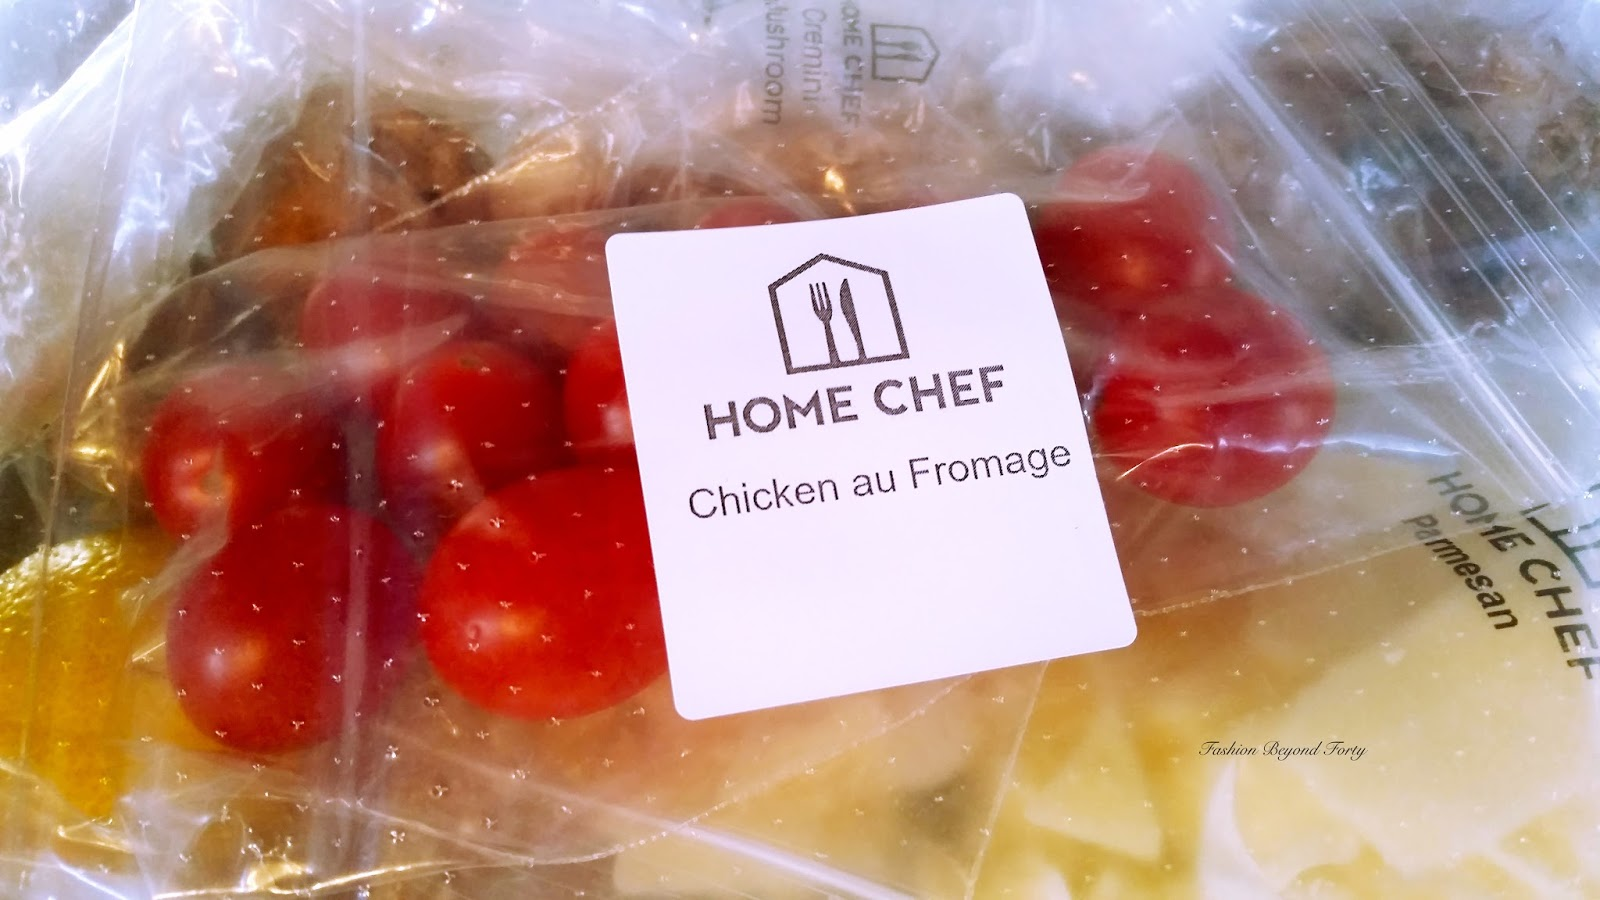 Why I Am Loving Home Chef Foodie Subscription Service - Get Your Free Food Today!